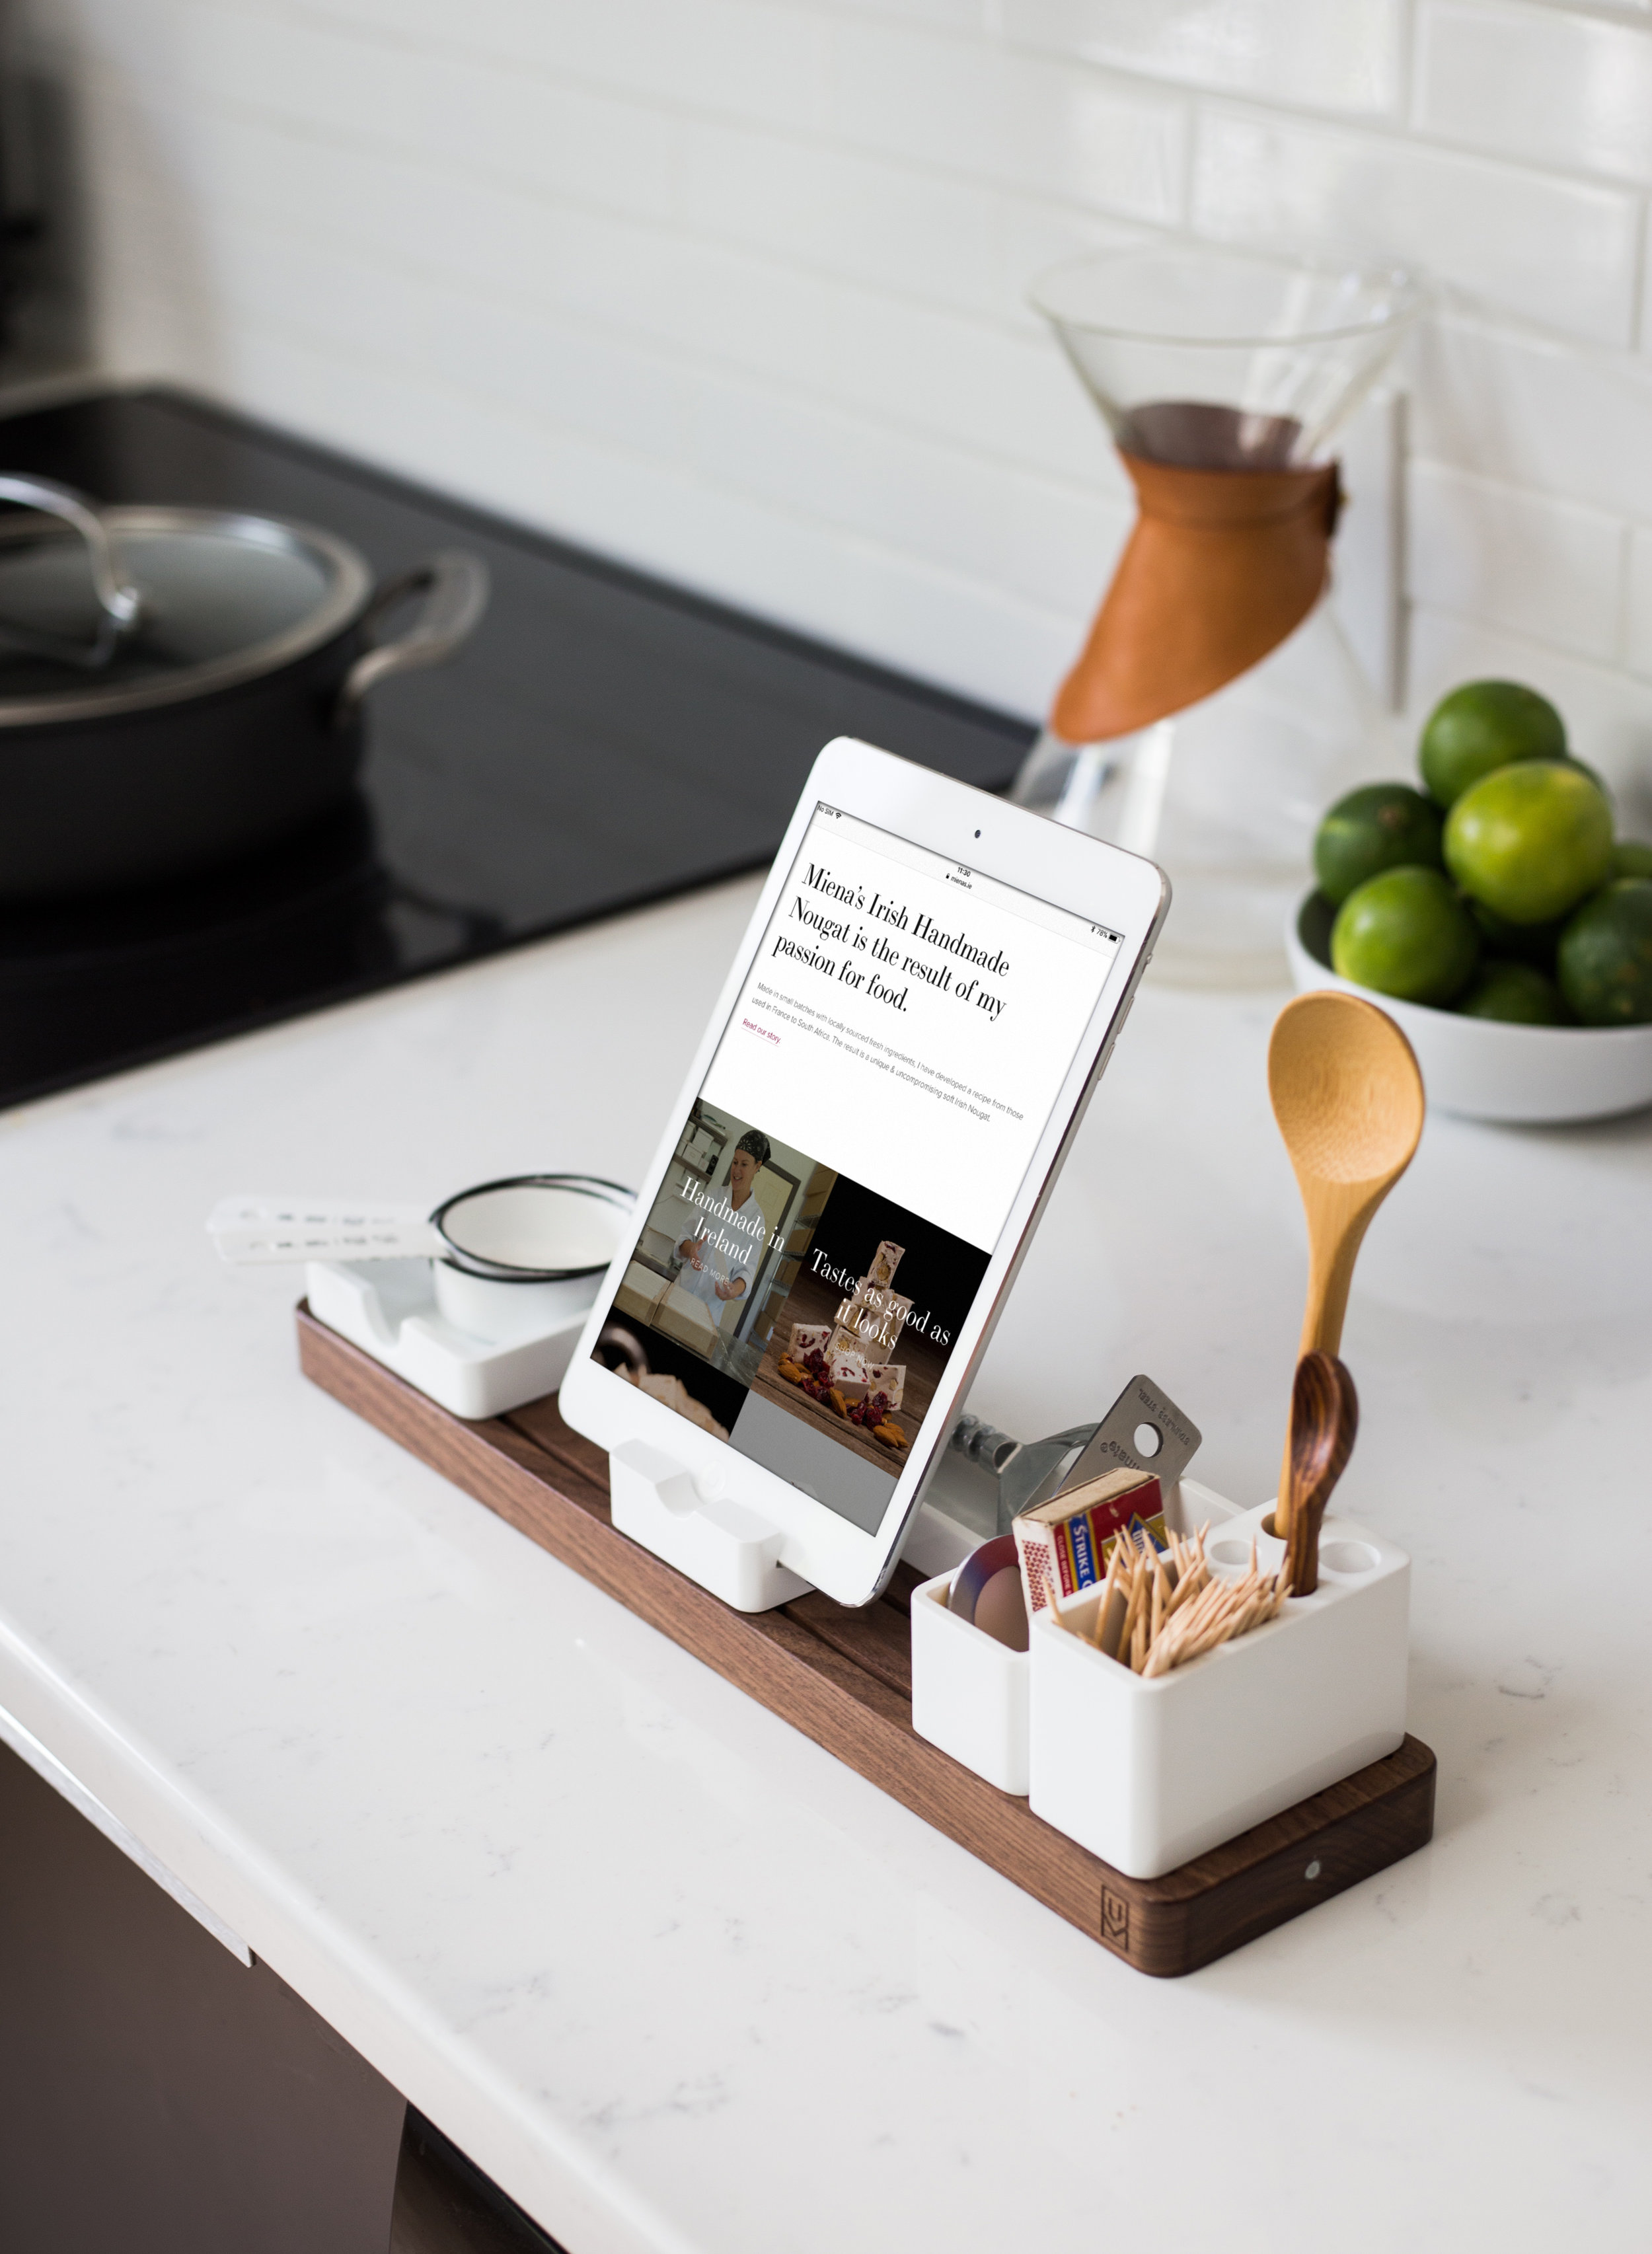 ipad-in-the-kitchen.jpg